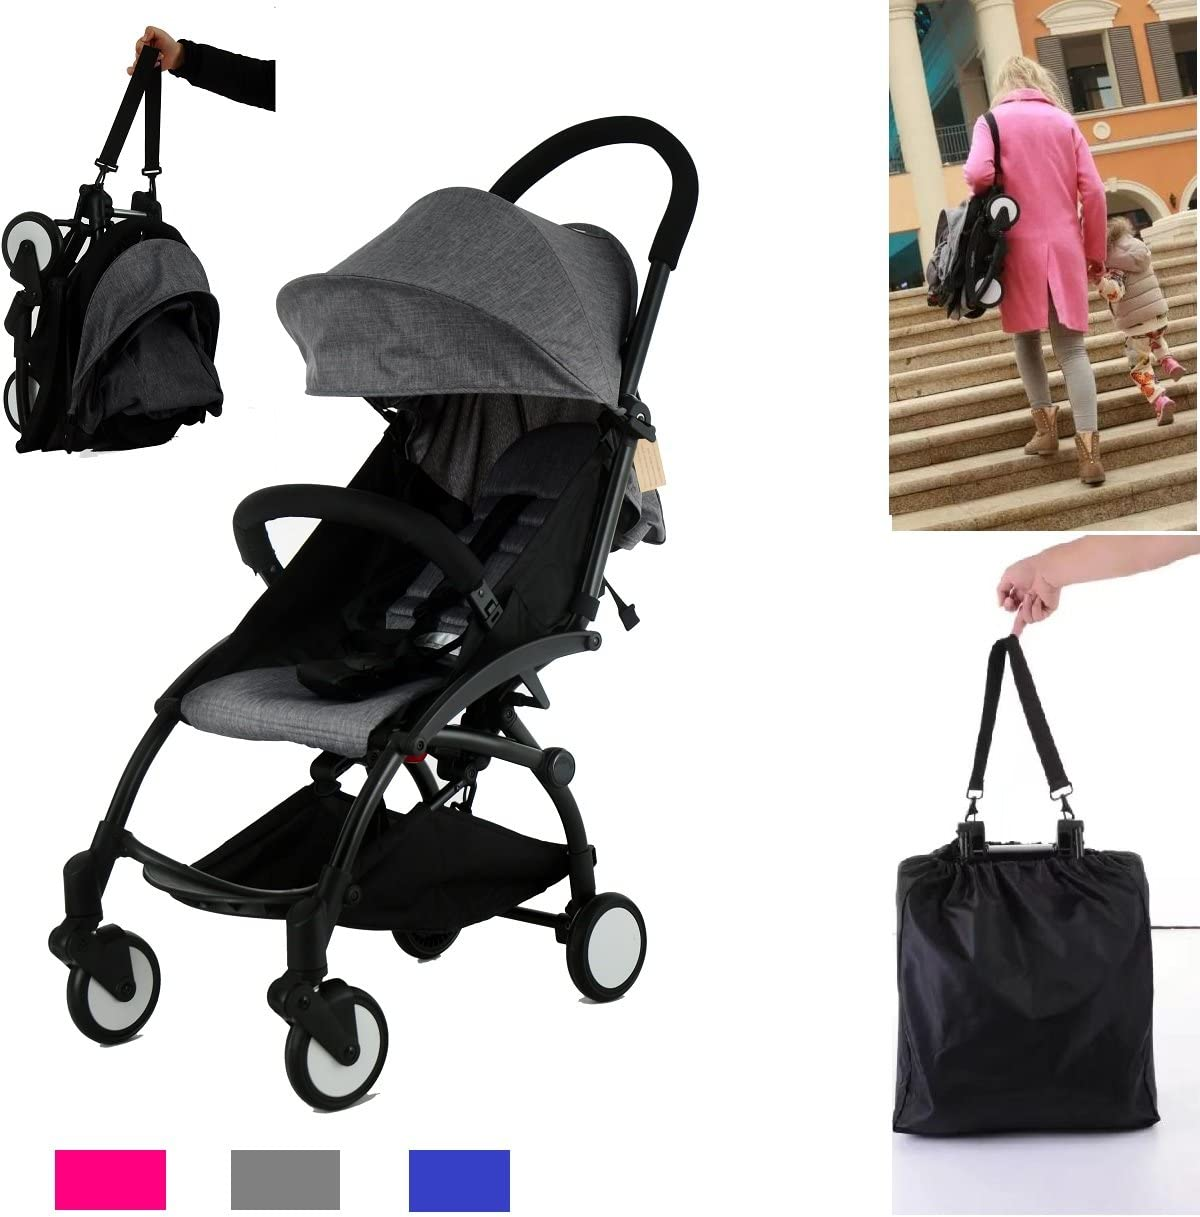 TomiKid Blue Travel Easy Lightweight Pram Buggy Travel Pushchair Stroller Carry Bag eith Rain Cover Recliner Rainer Cover Fits in Small CAR Boots Peugeot 107 /& Fiat 500C Grey